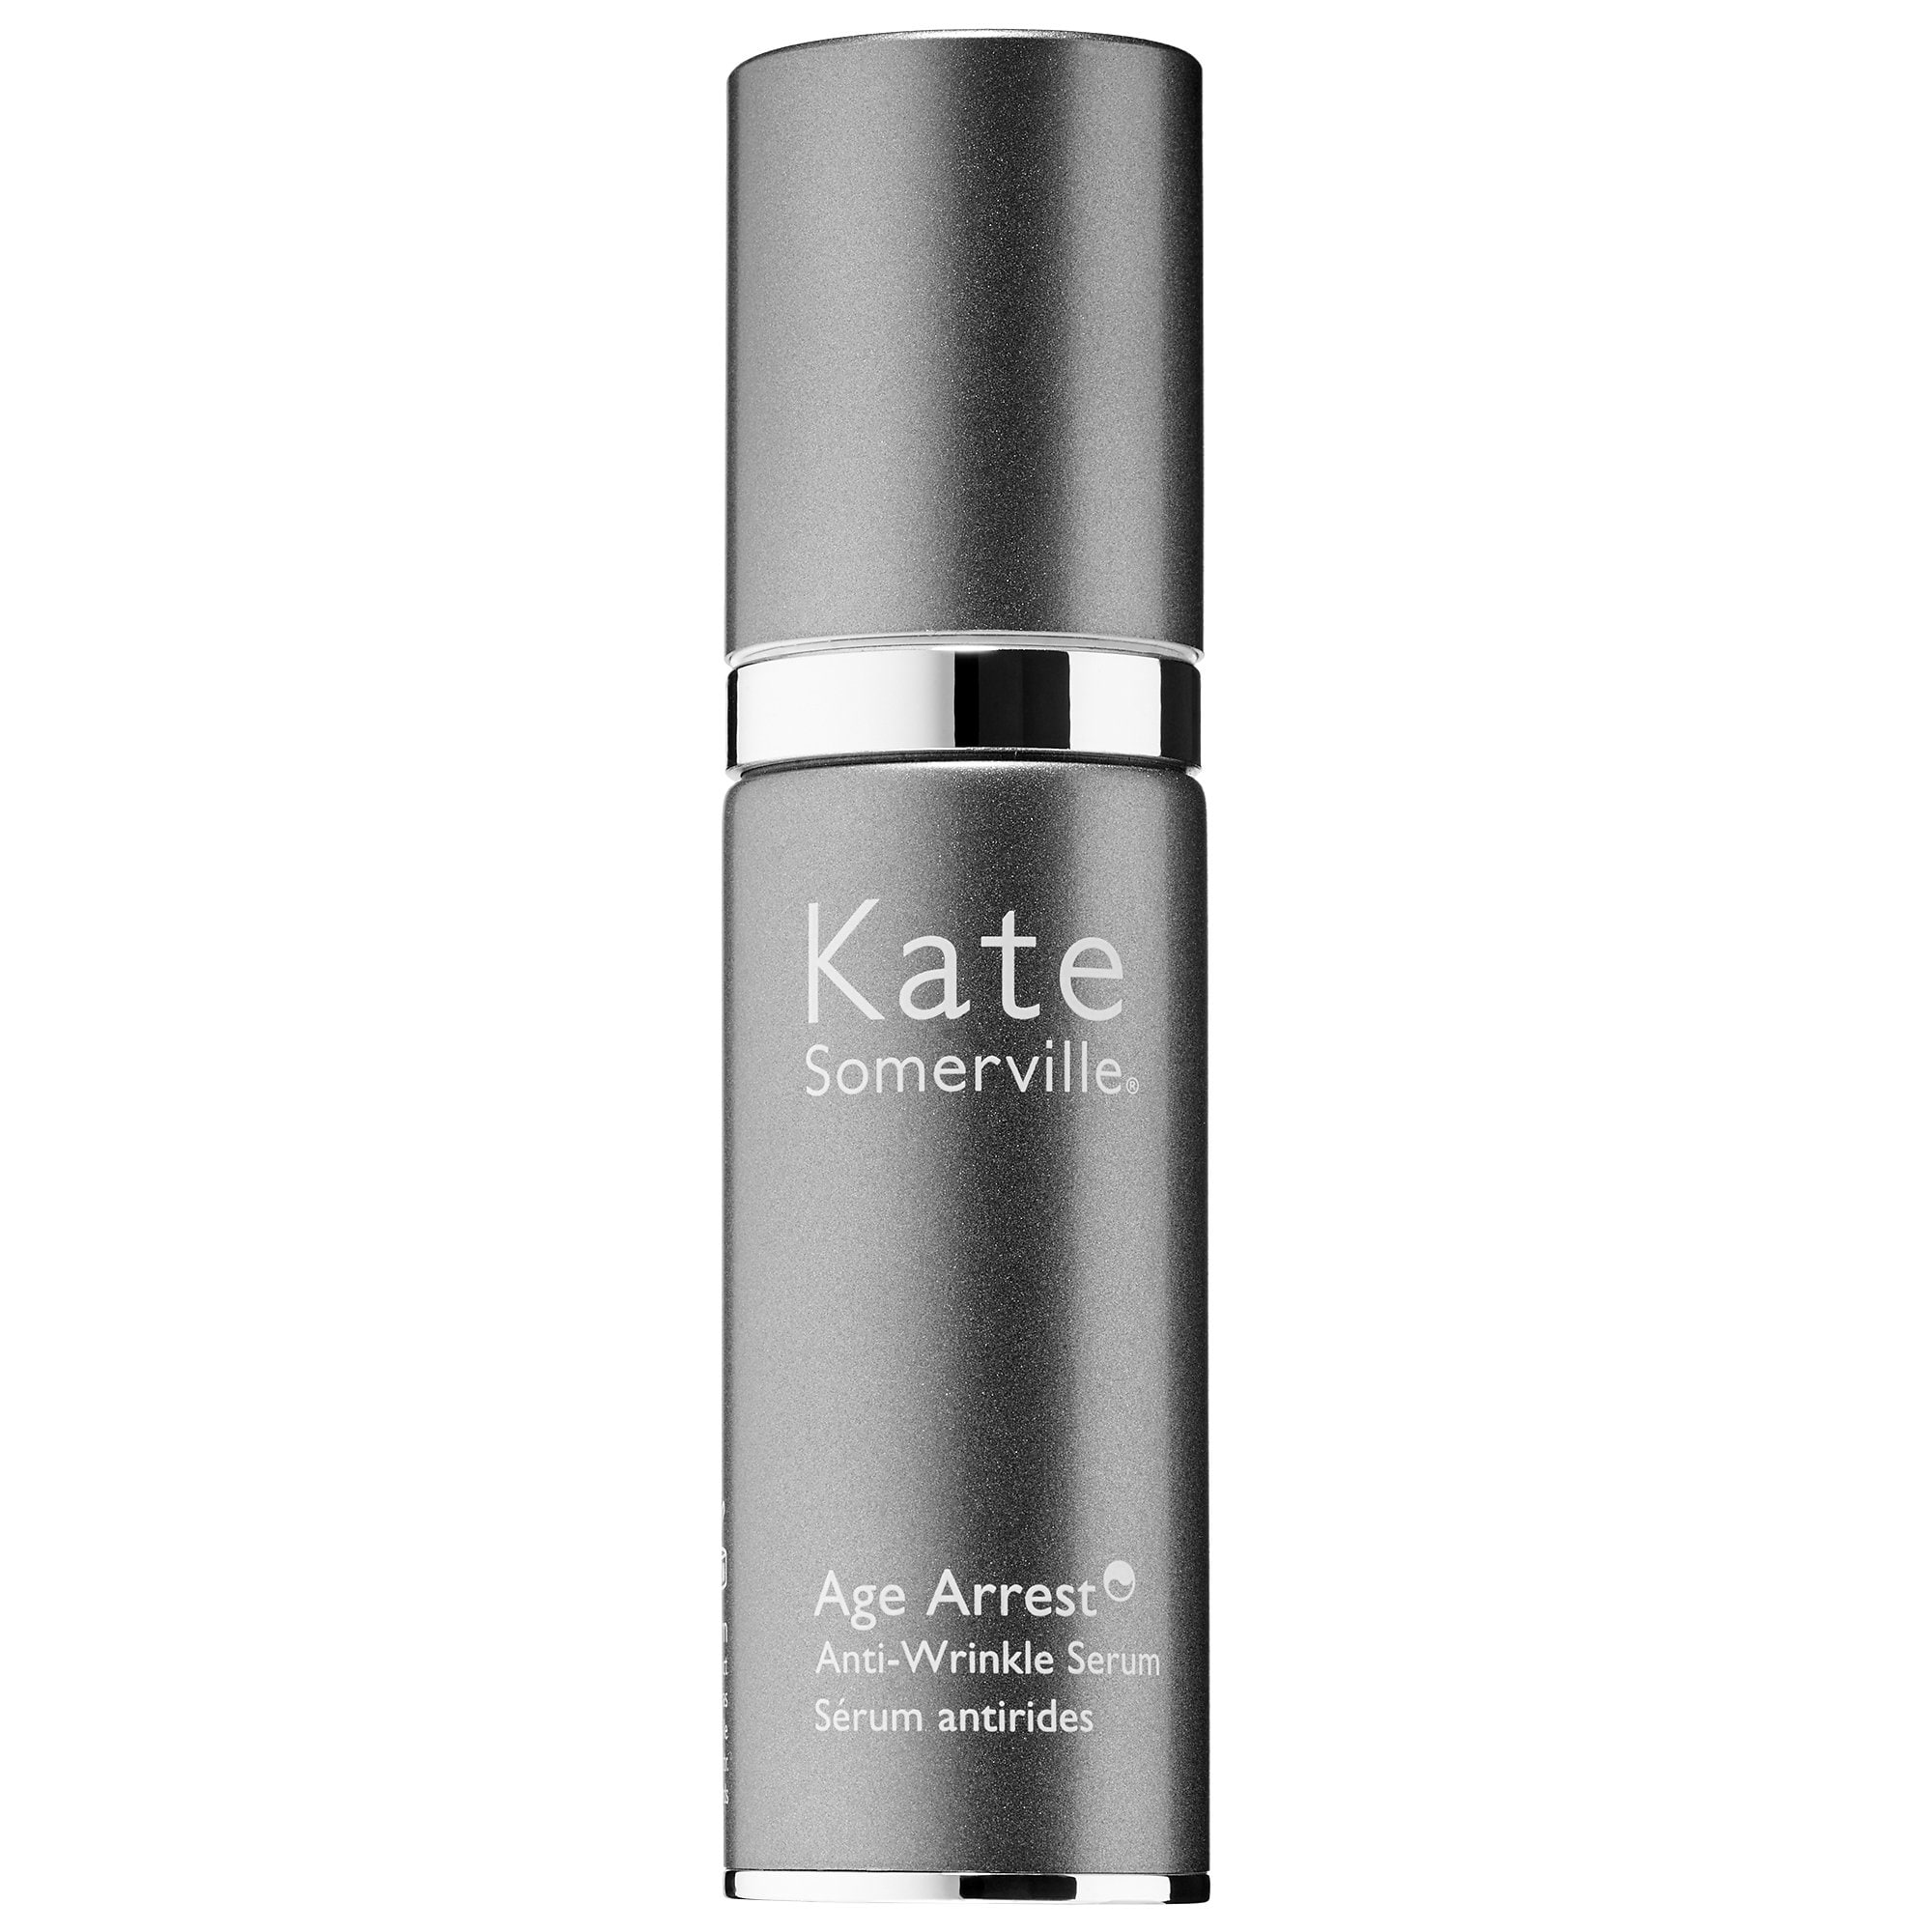 Age Arrest Anti-Wrinkle Serum